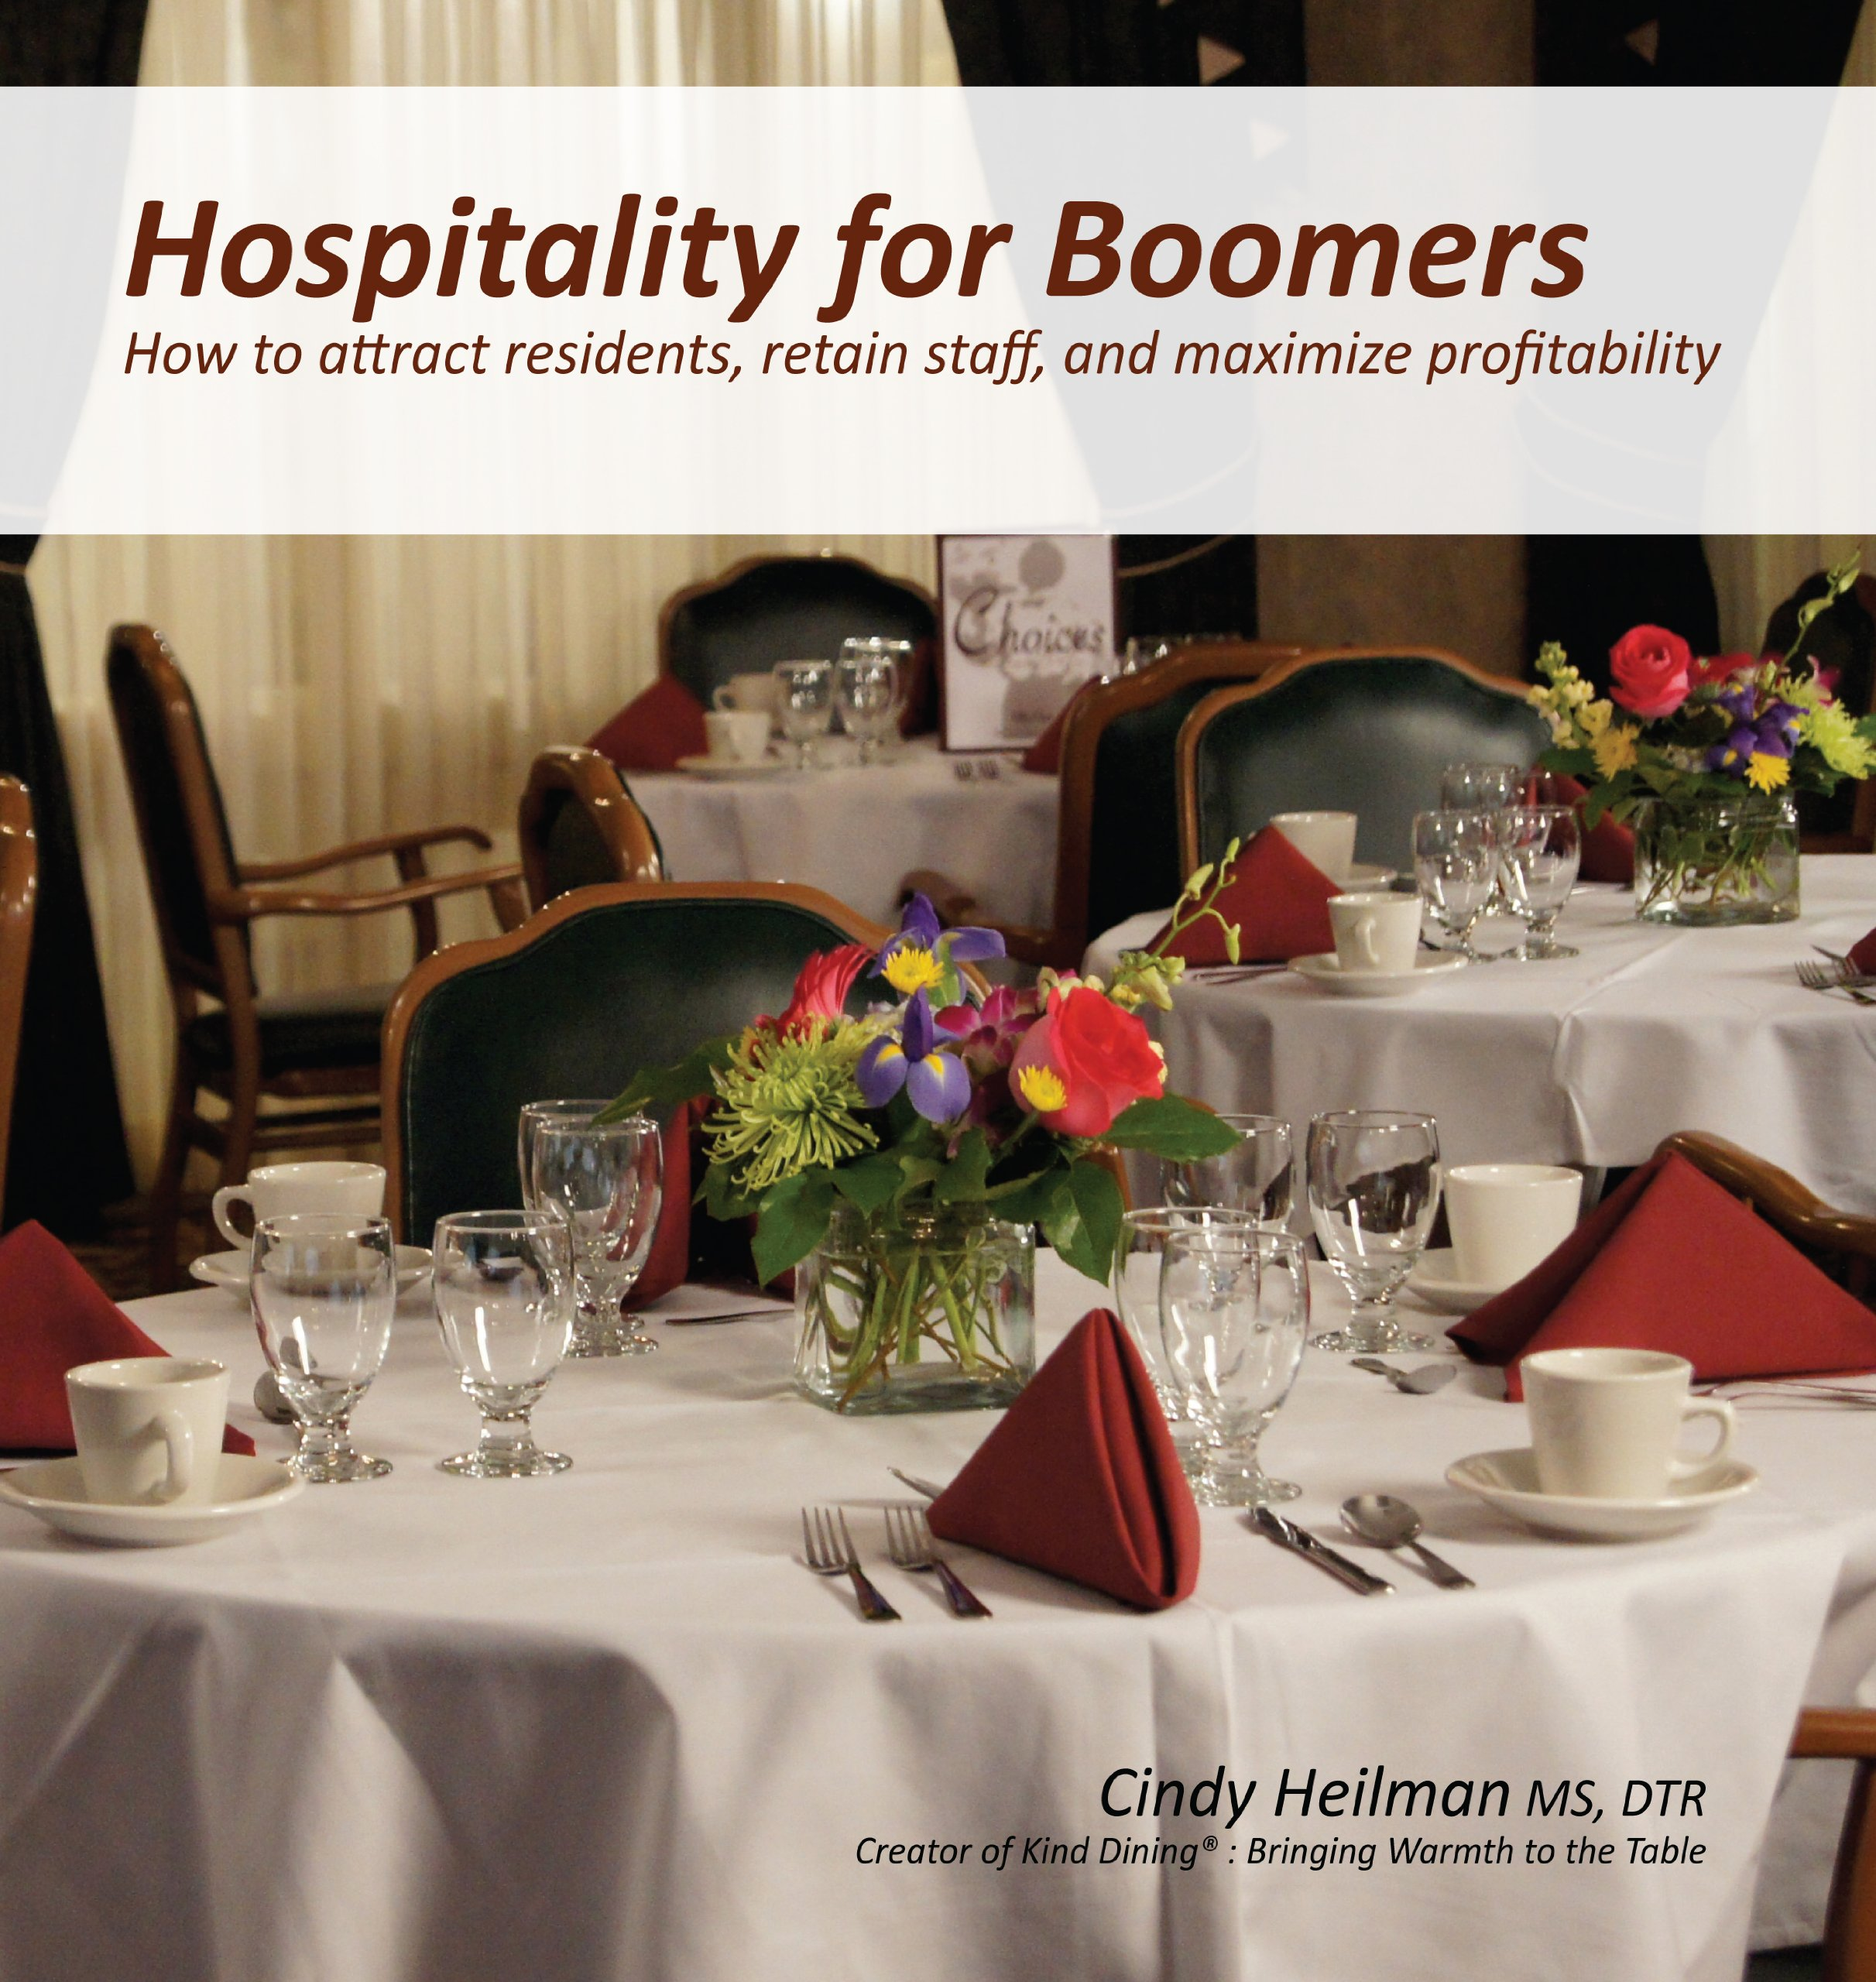 Read Online Hospitality for Boomers: How to attract residents, retain staff, and maximize profitability PDF